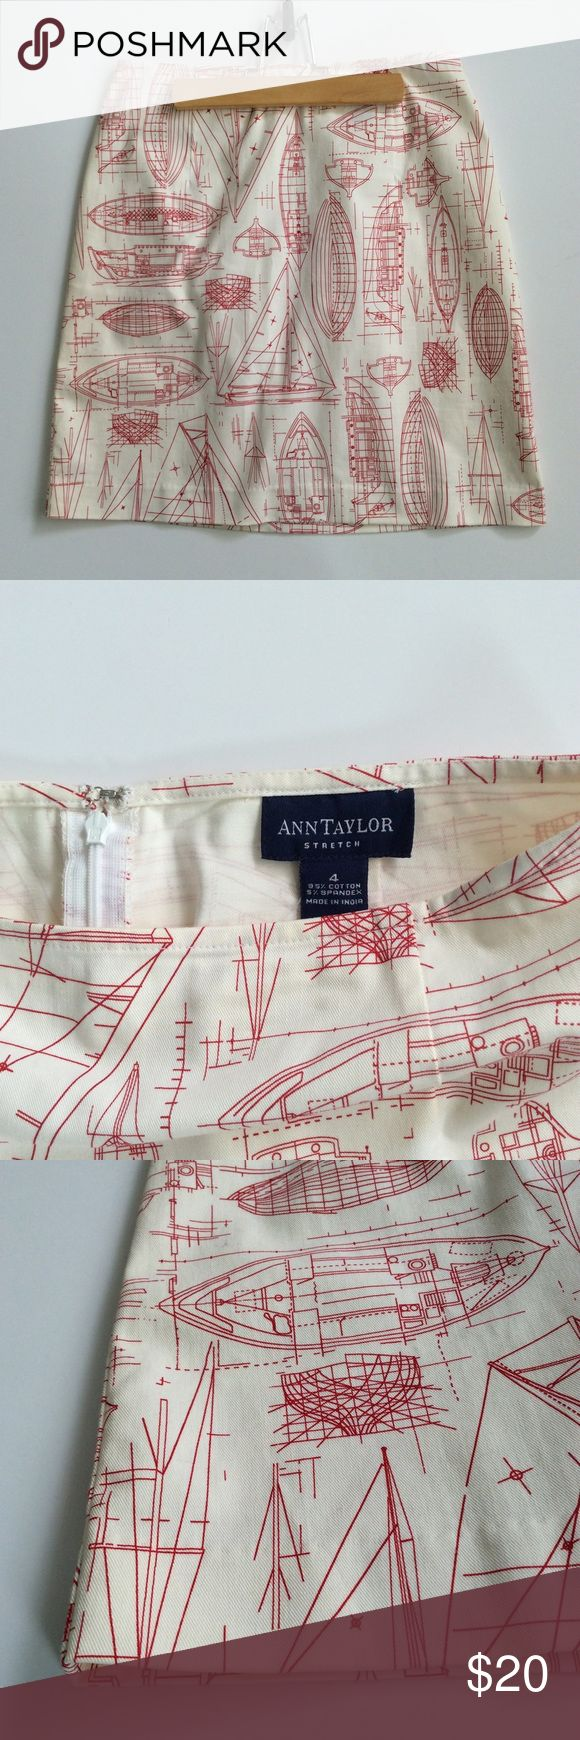 """[Ann Taylor] Nautical Boat Schematics Skirt Nautical skirt from Ann Taylor. Stretch. White / off-white / natural color with red illustrated boat blueprint / schematics design. Size 4. Measures 13.5"""" across waist, while flat, and 18"""" in length. Ann Taylor Skirts"""